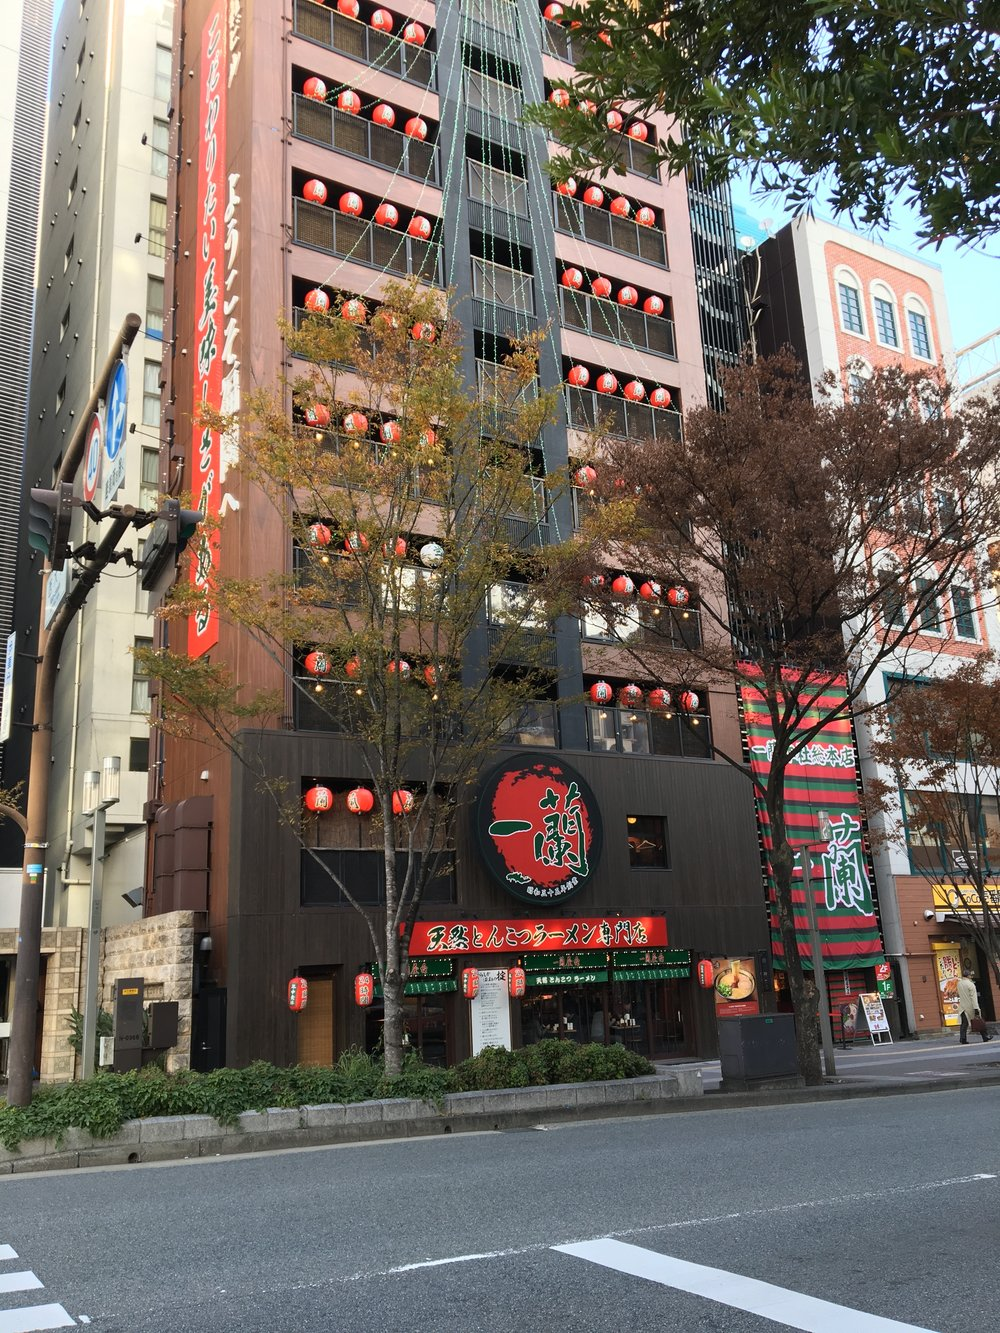 Ichiran HQ and 24 hour restaurant